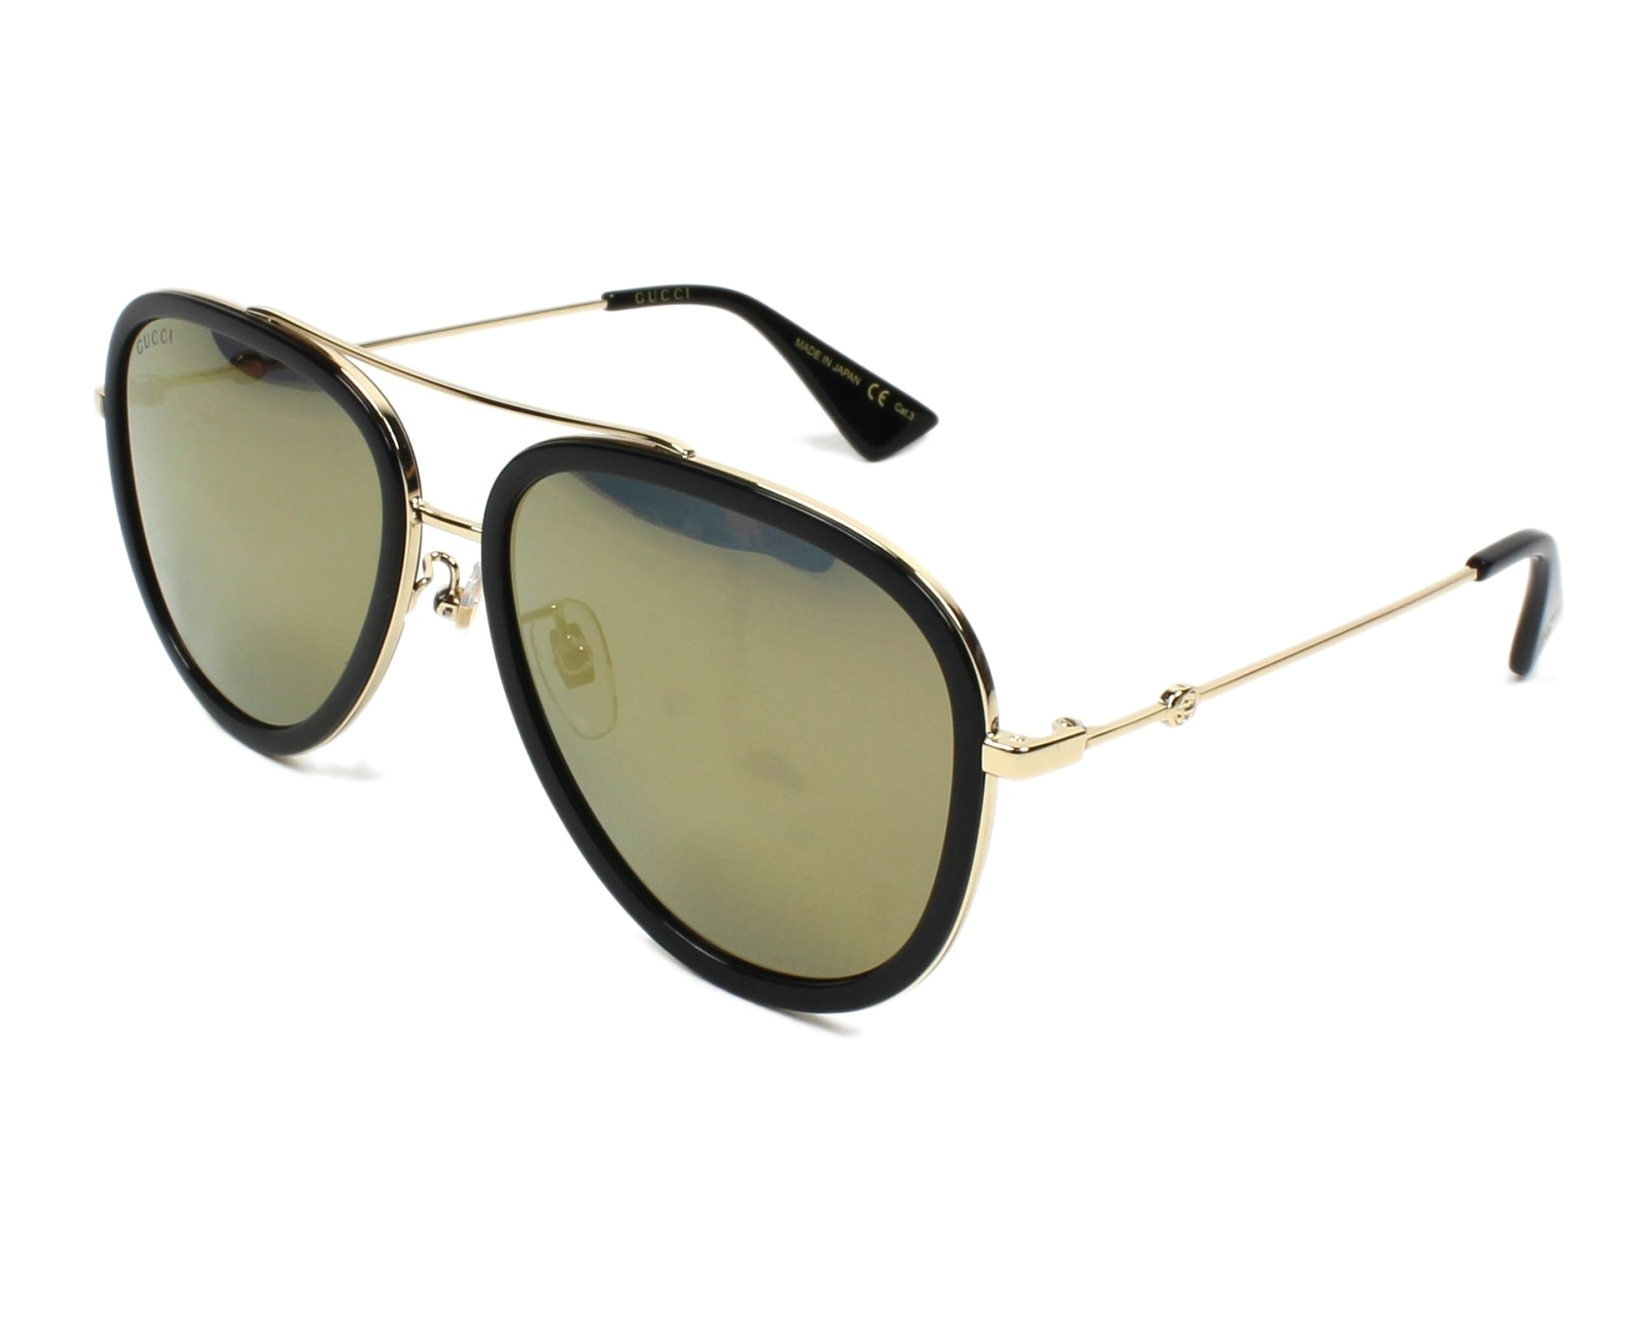 0d45412b270 Sunglasses Gucci GG-0062-S 001 - Black Gold profile view